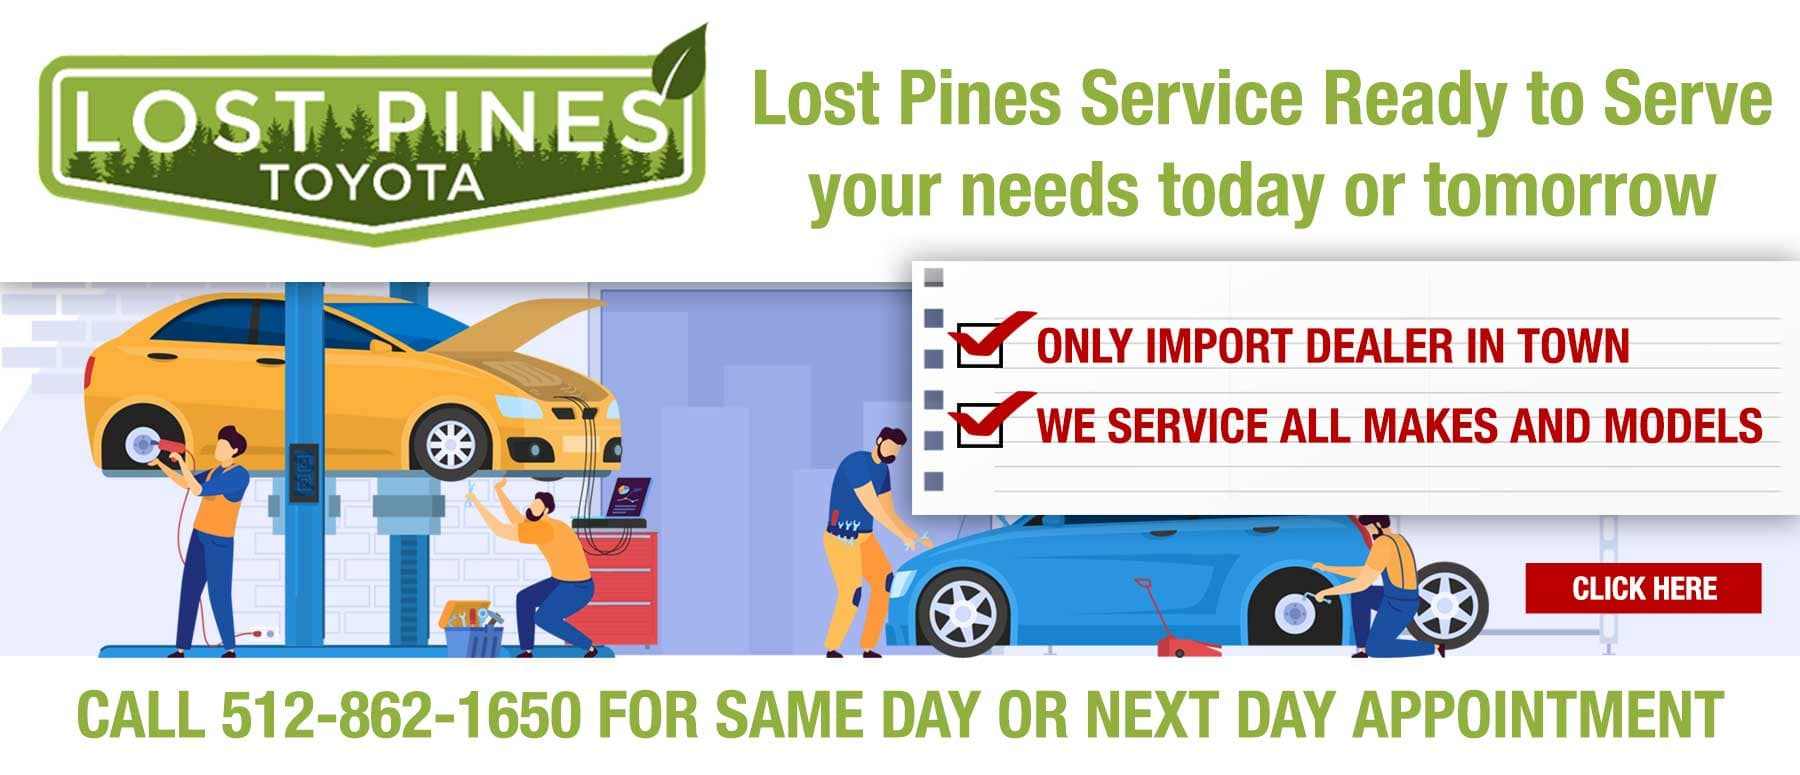 Lost Pines Service Ready to Serve Your Needs Today Or Tomorrow